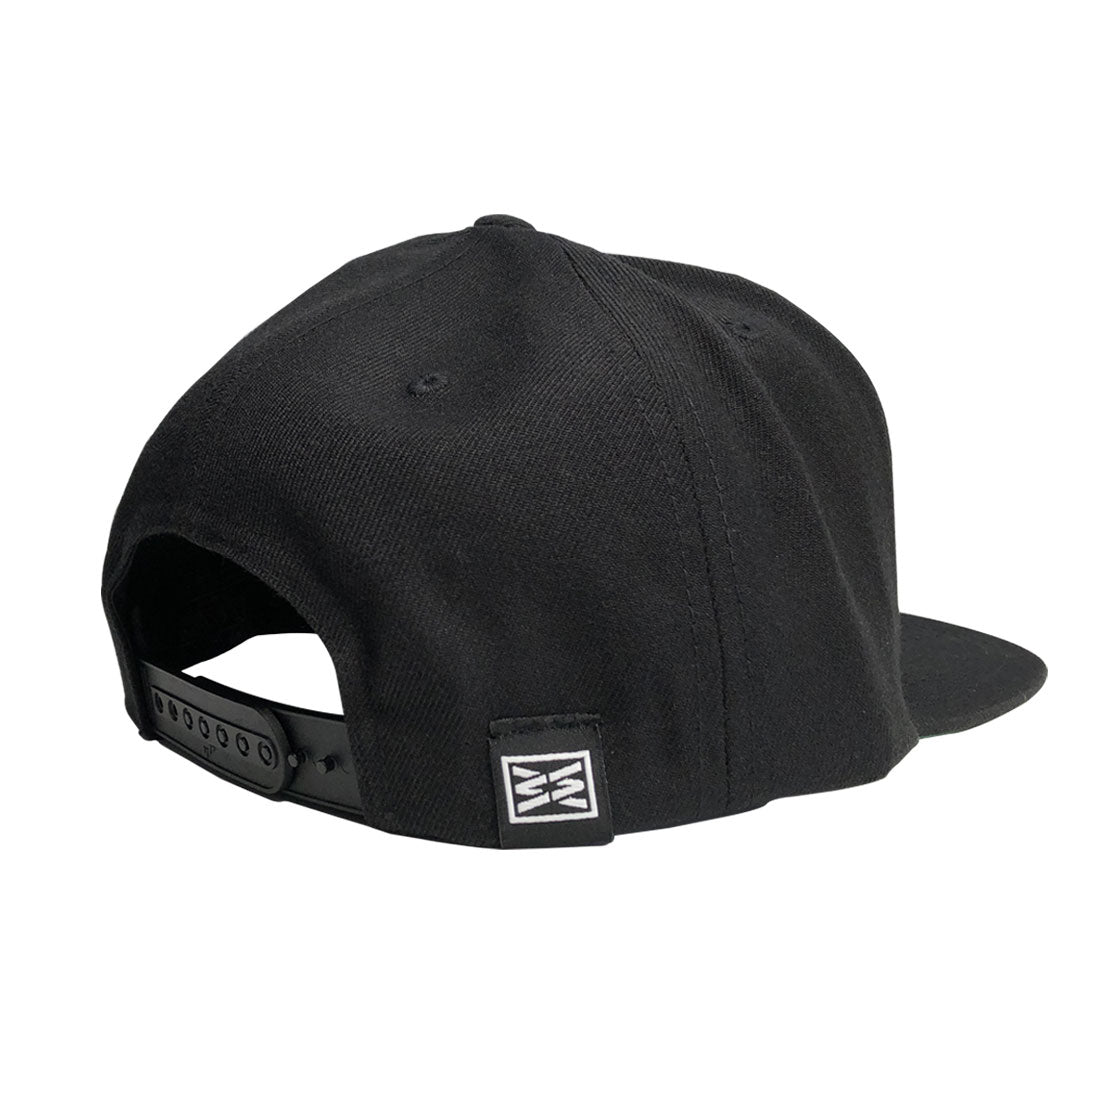 RIZNWILD | Black snapback hat with private label sewn on the back of cap